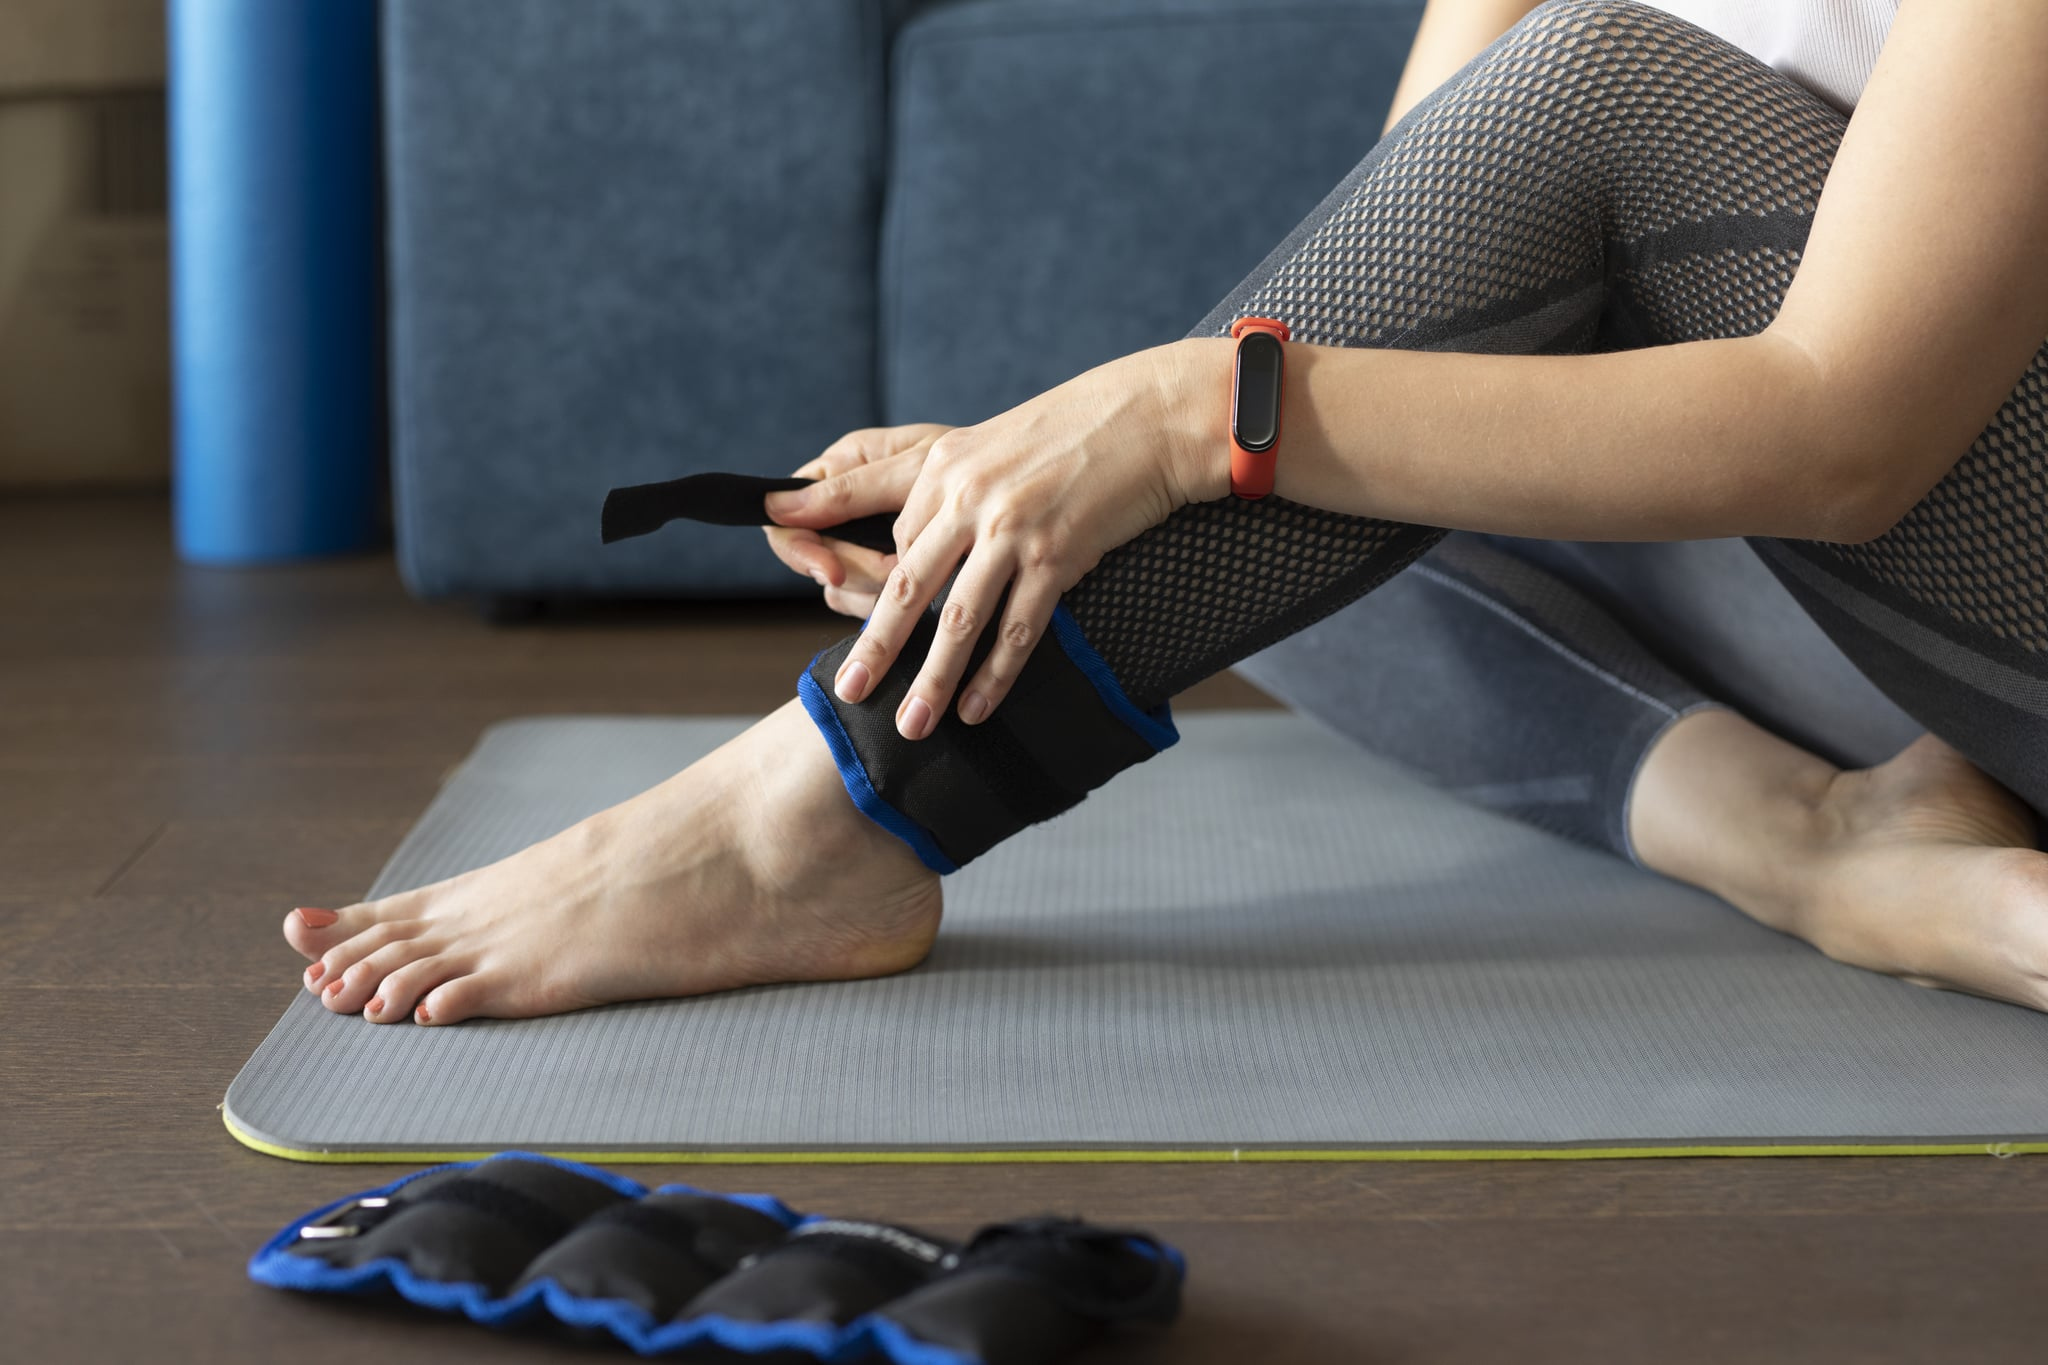 Anonymous woman putting ankle weights on her legs to work out at home.